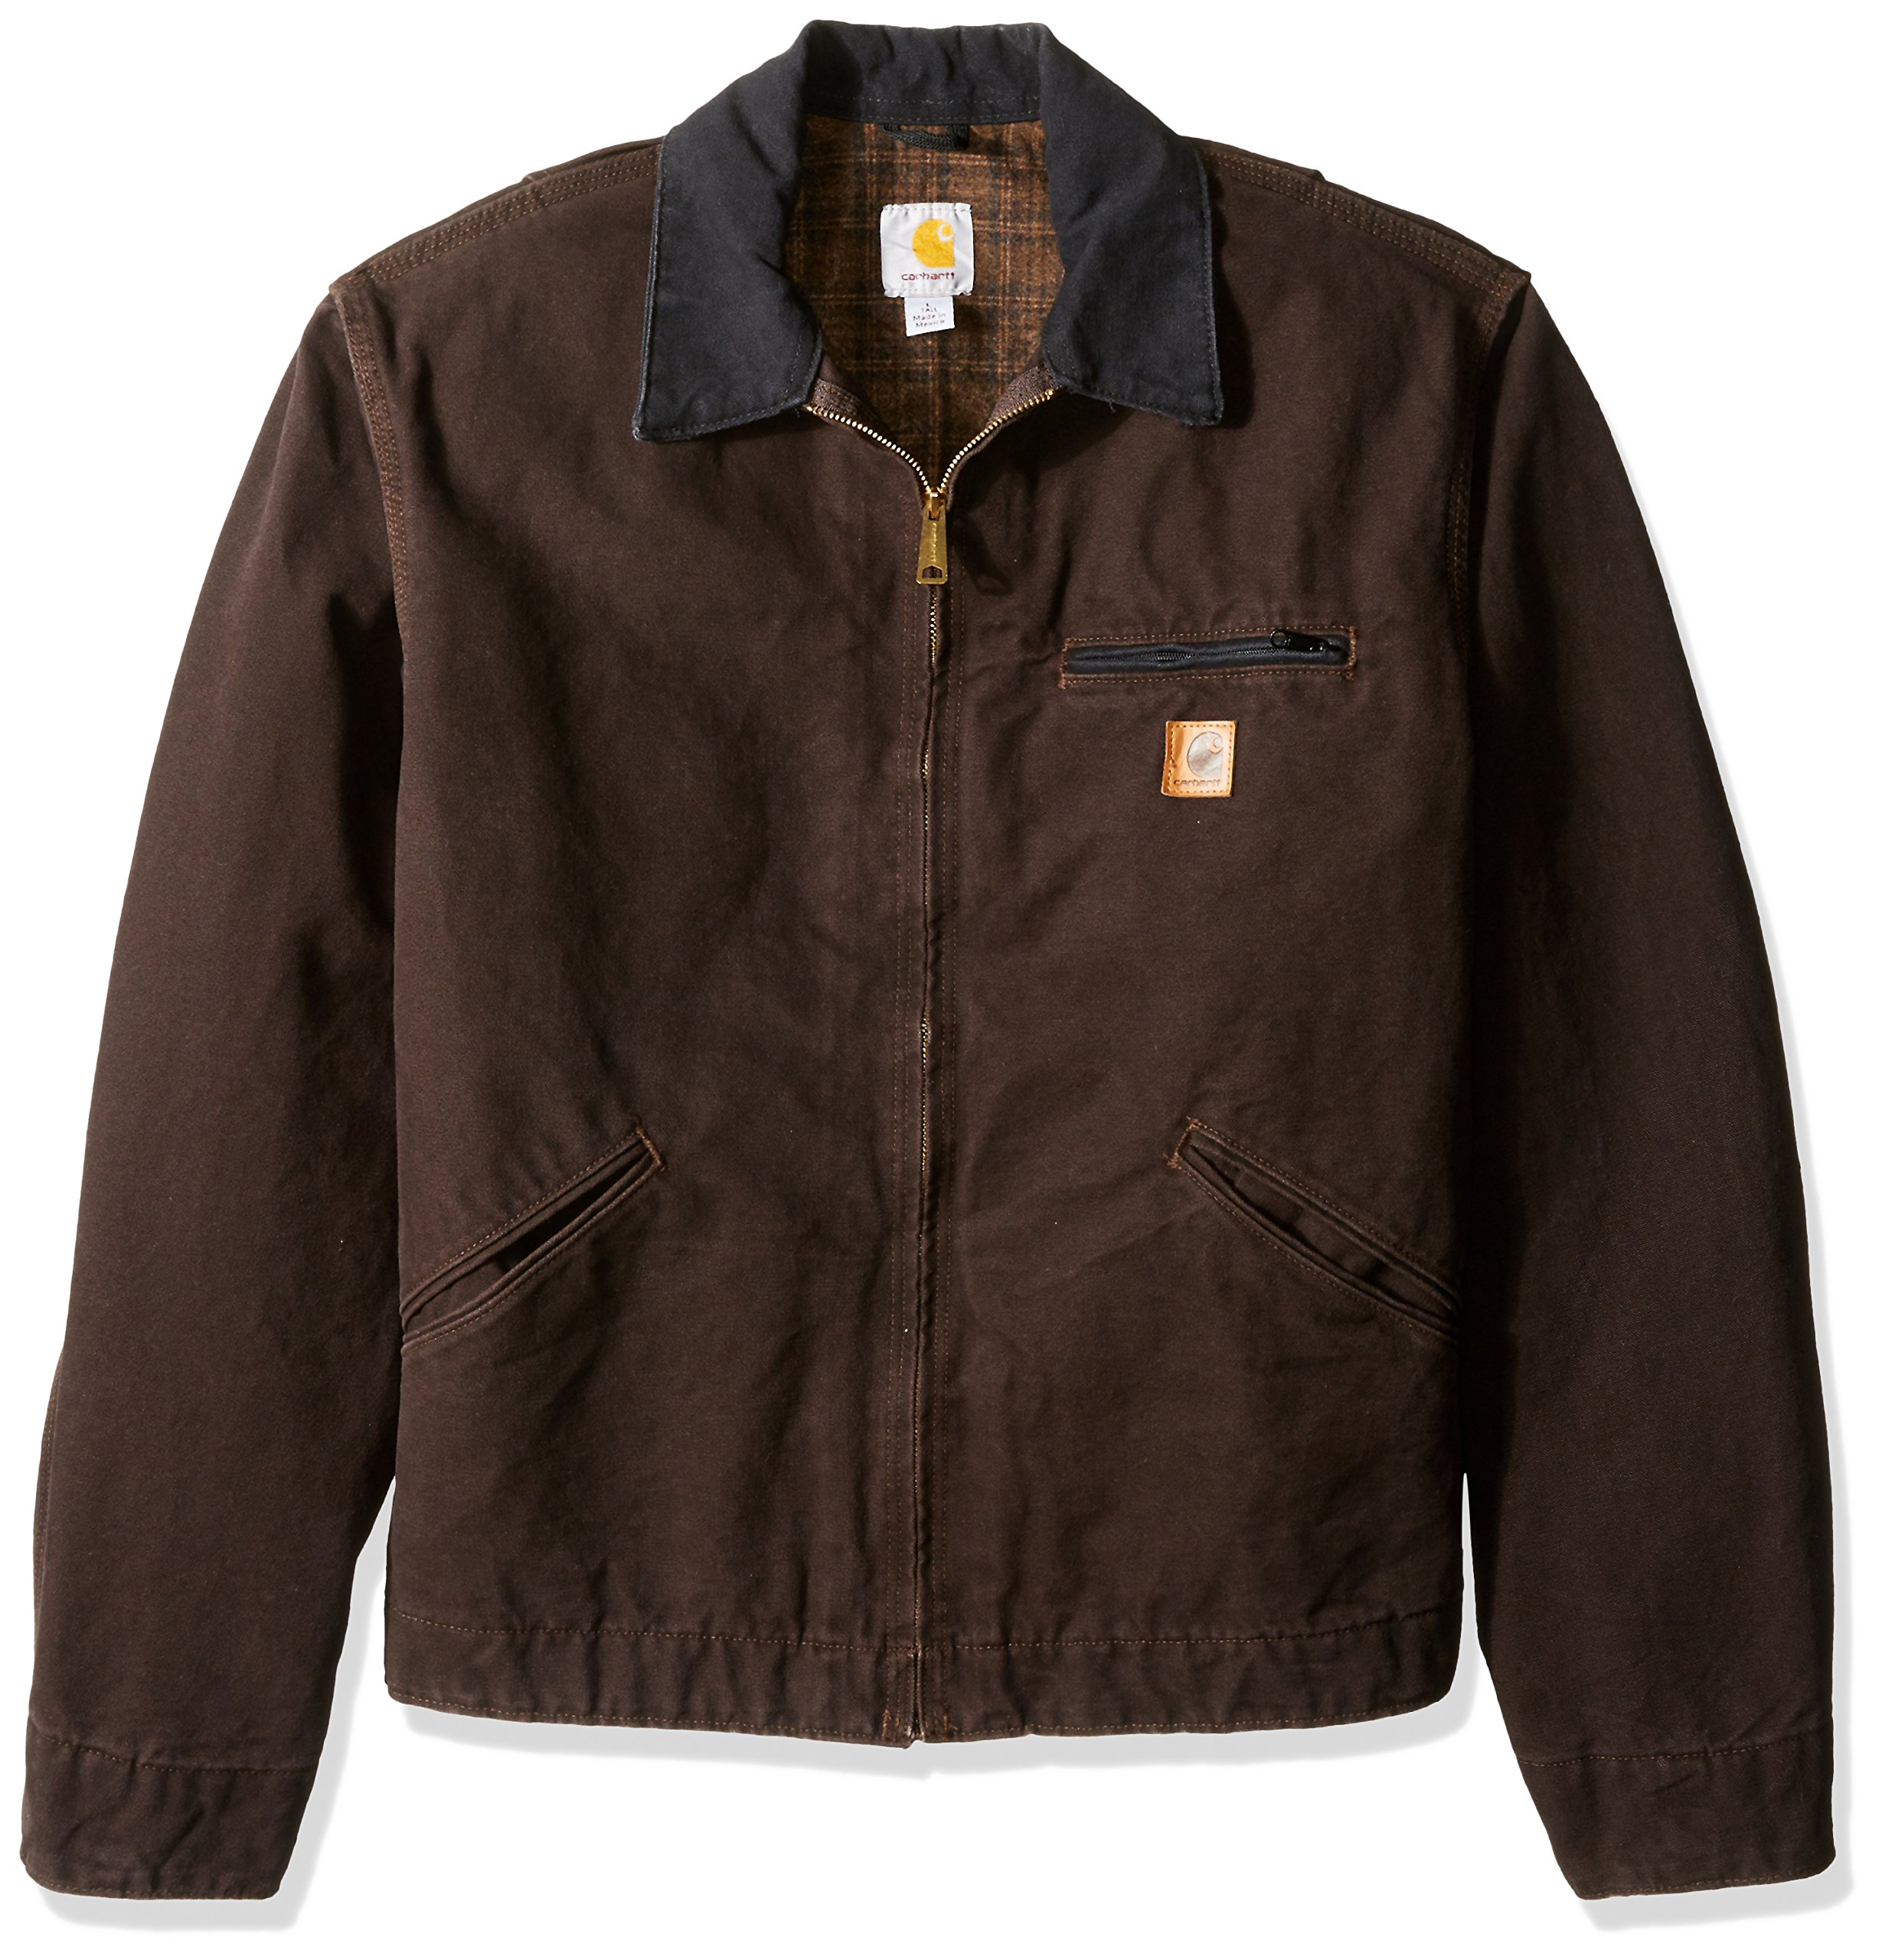 Carhartt Men's Big & Tall Blanket Lined Sandstone Detroit Jacket J97,Dark Brown,Large Tall by Carhartt